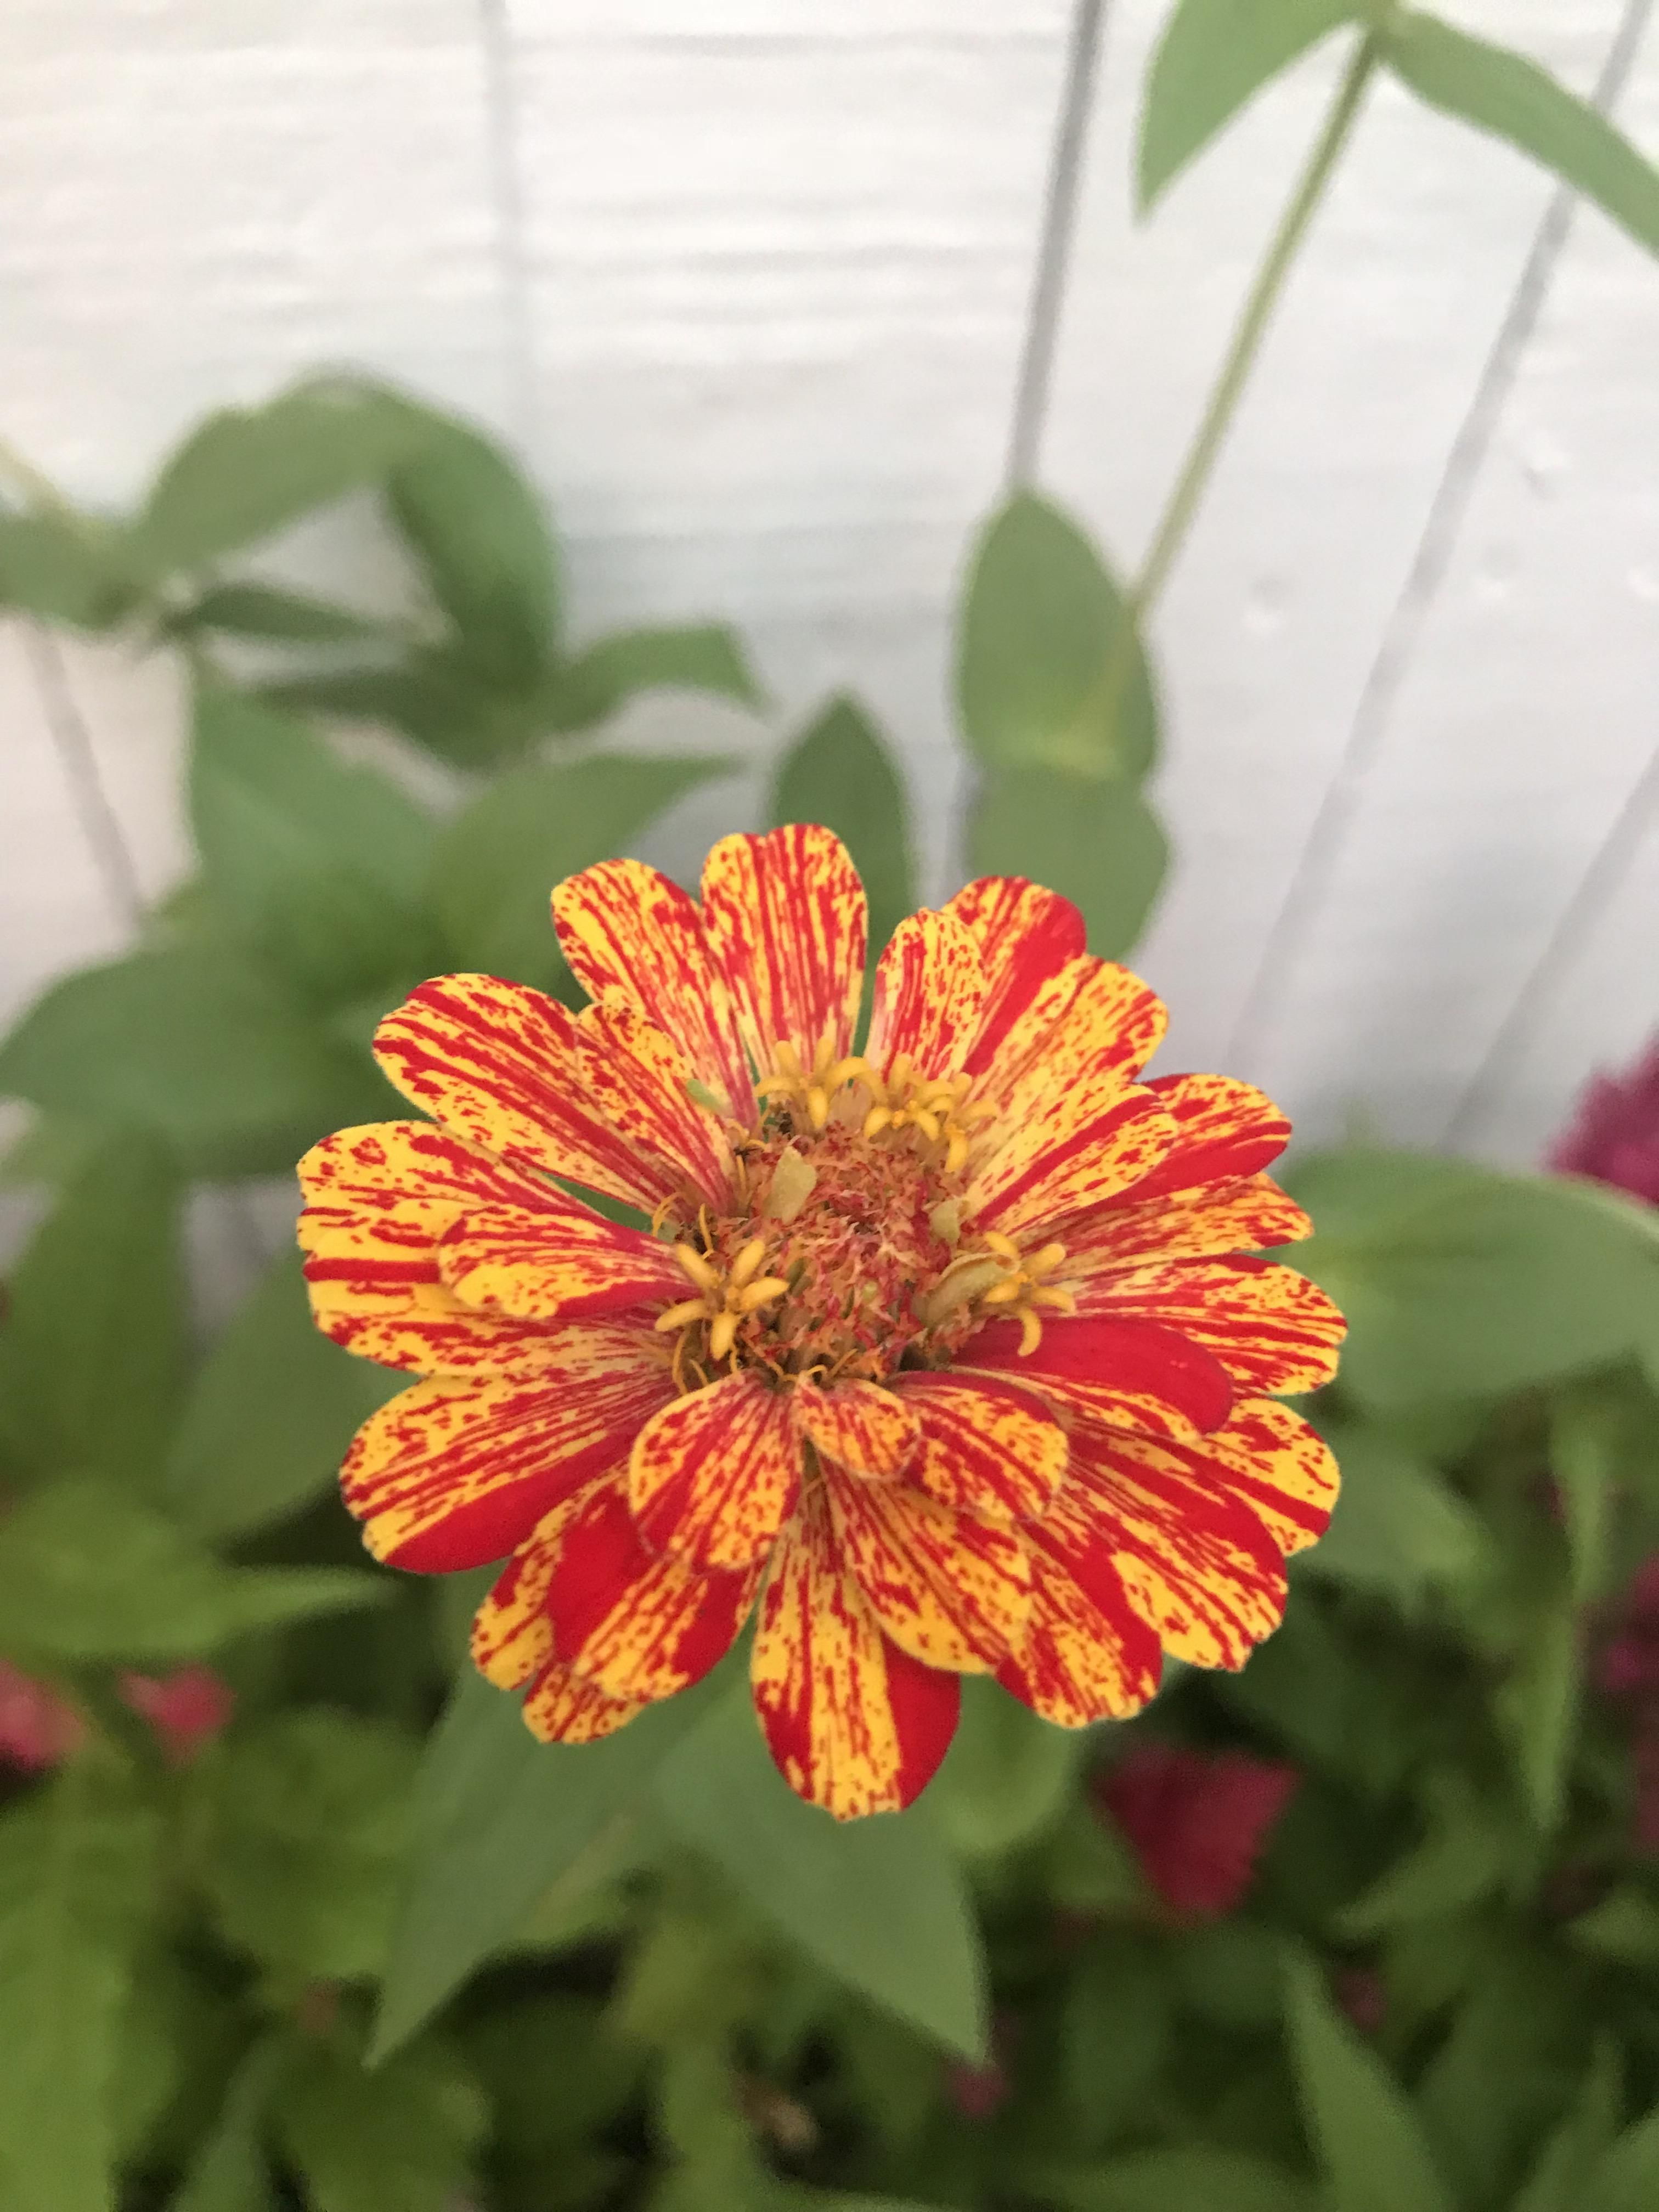 I Planted Zinnia Seed And Got This Amazing Starburst Flower